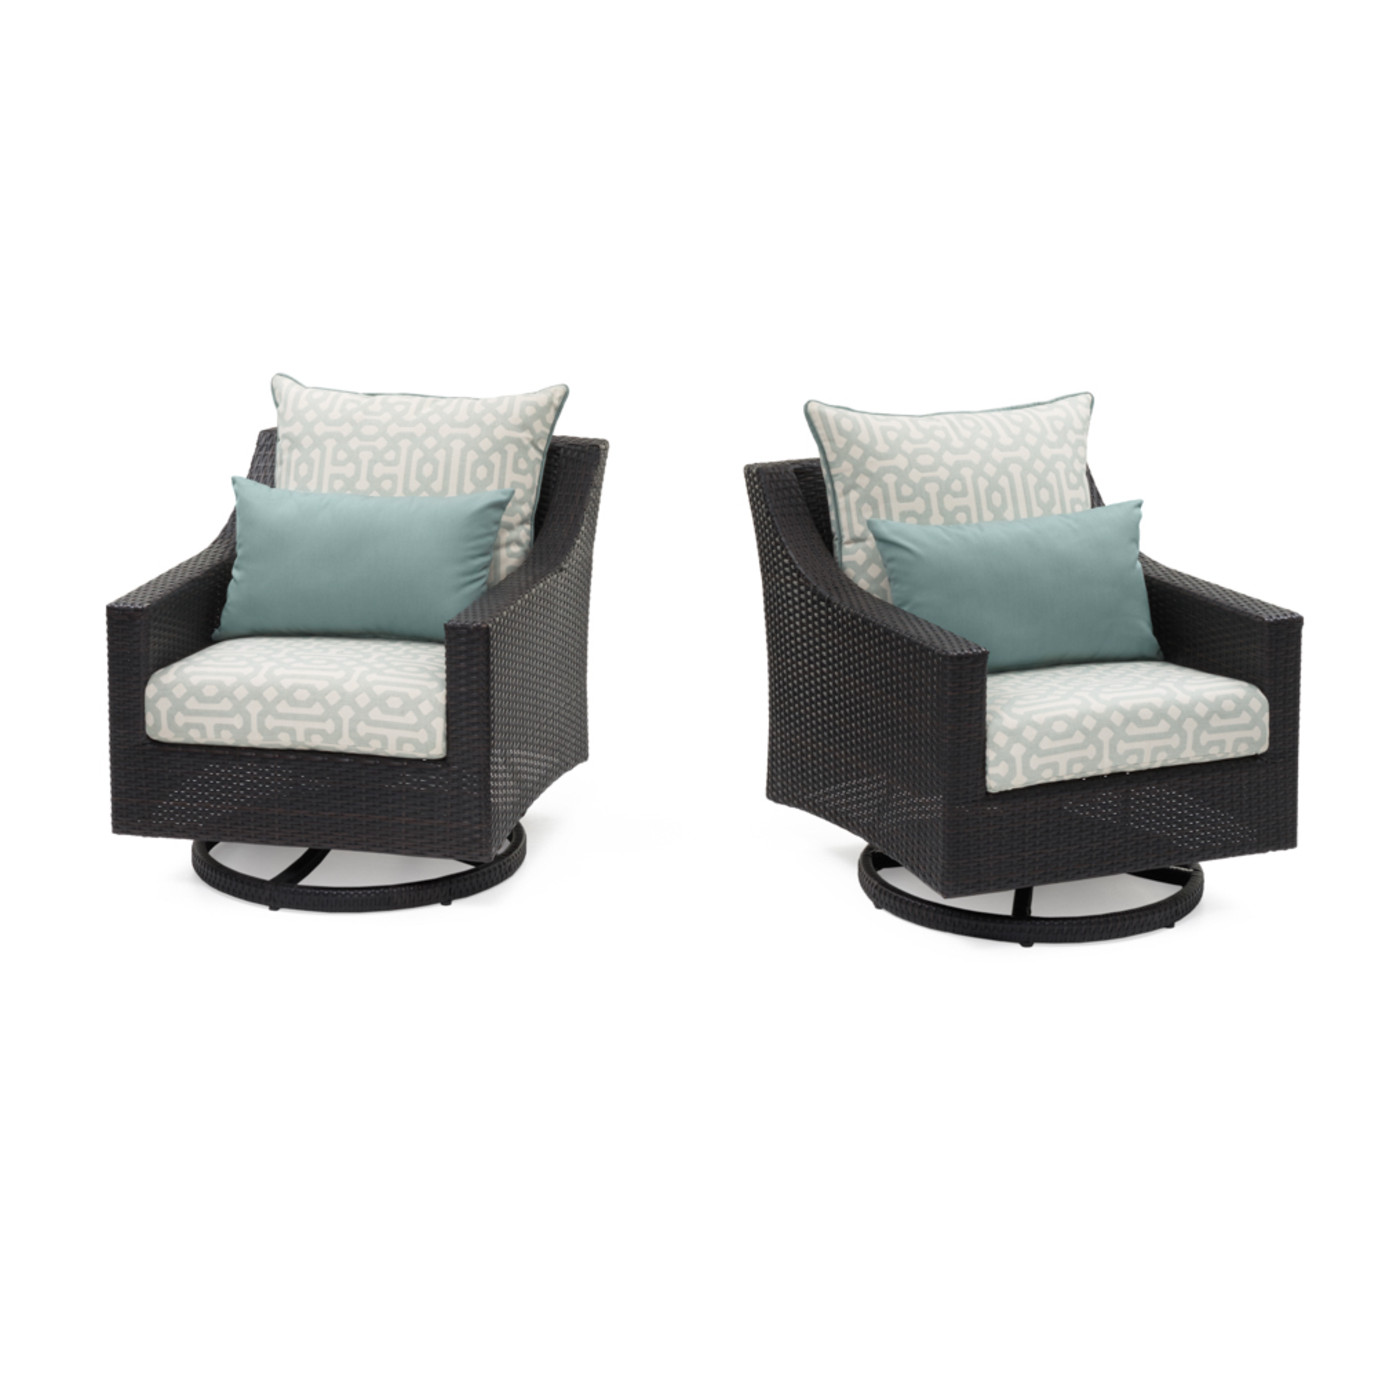 Deco™ Deluxe Set of 2 Motion Club Chairs - Spa Blue